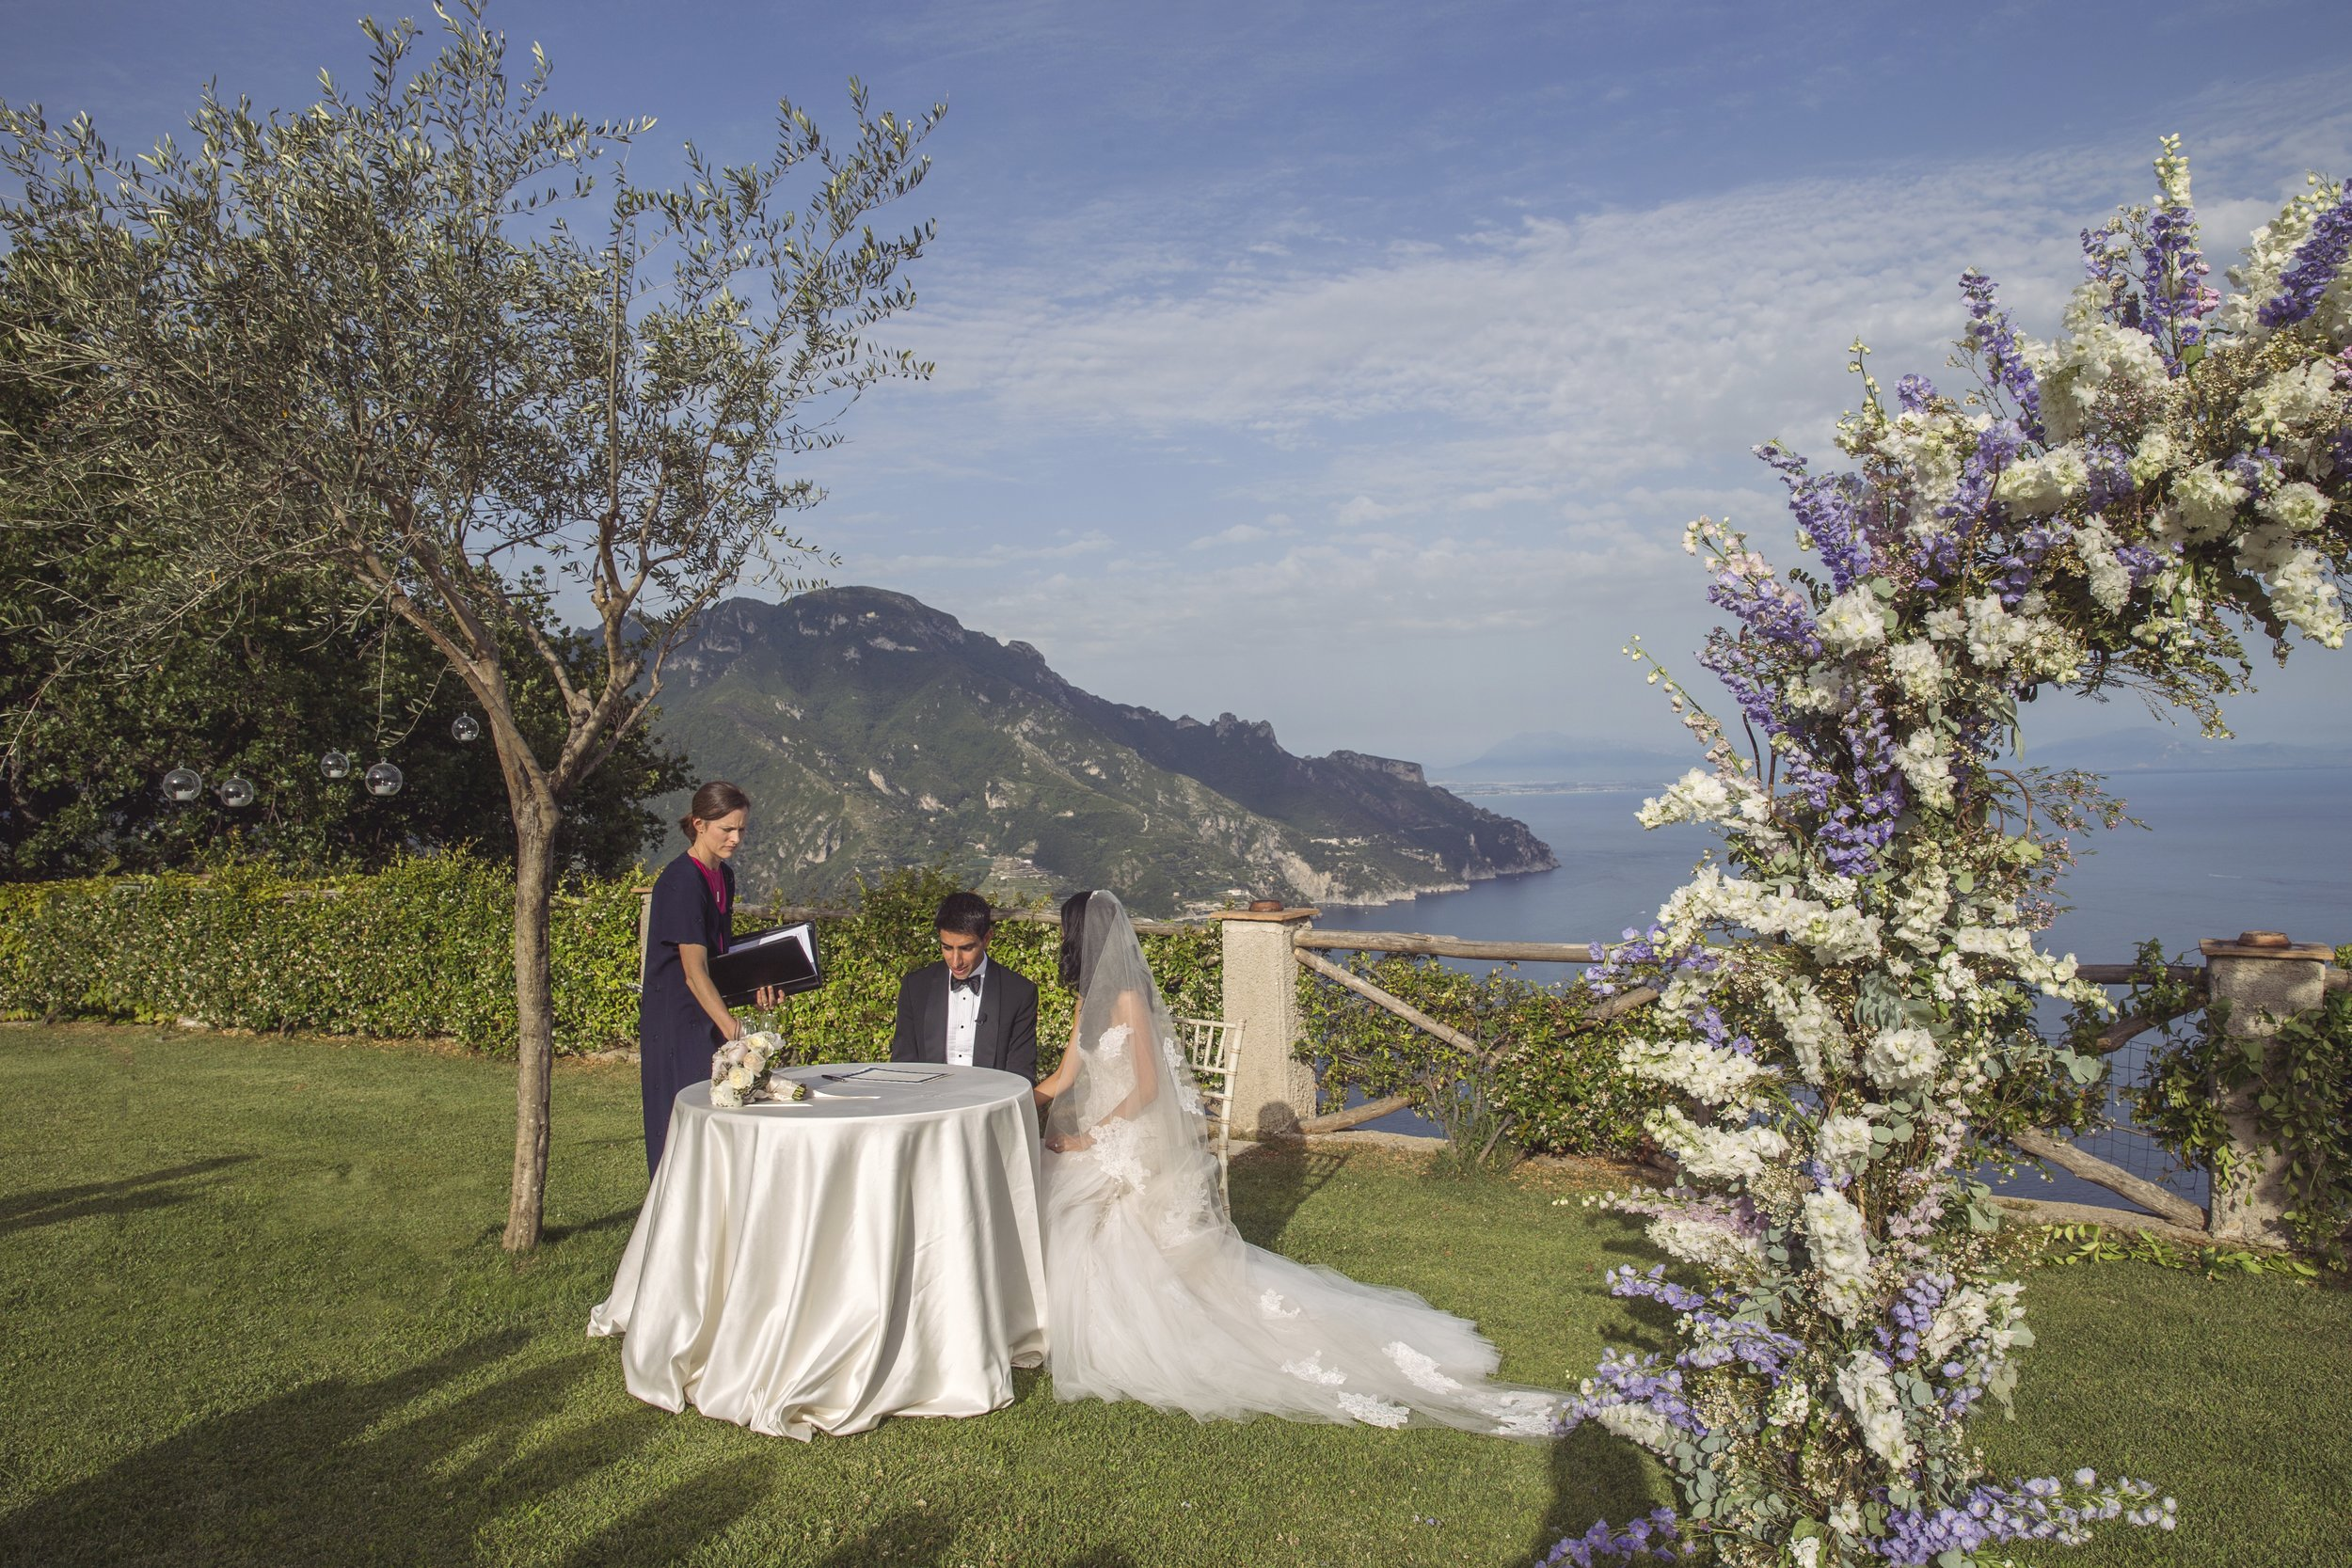 Lucy & Zameer. Villa Cimbrone. Amalfi Experience Wedding Planners. Photo by Joanne Dunn